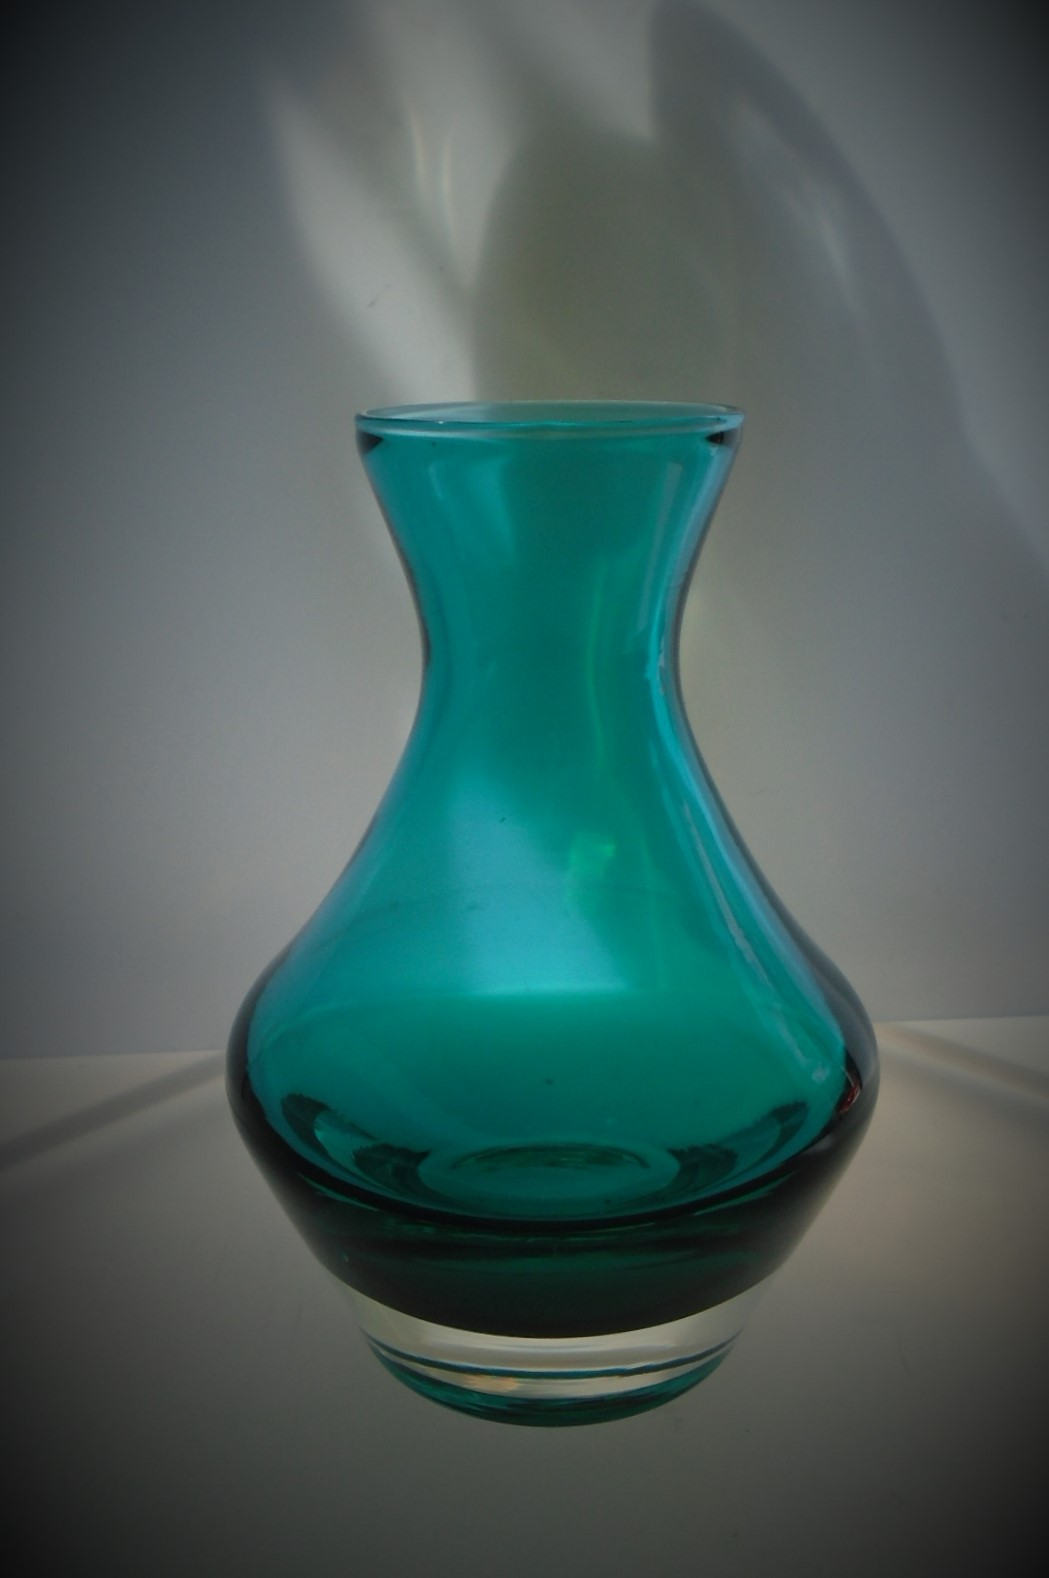 Super example of a small vintage Riihimaki glass vase in Turquoise